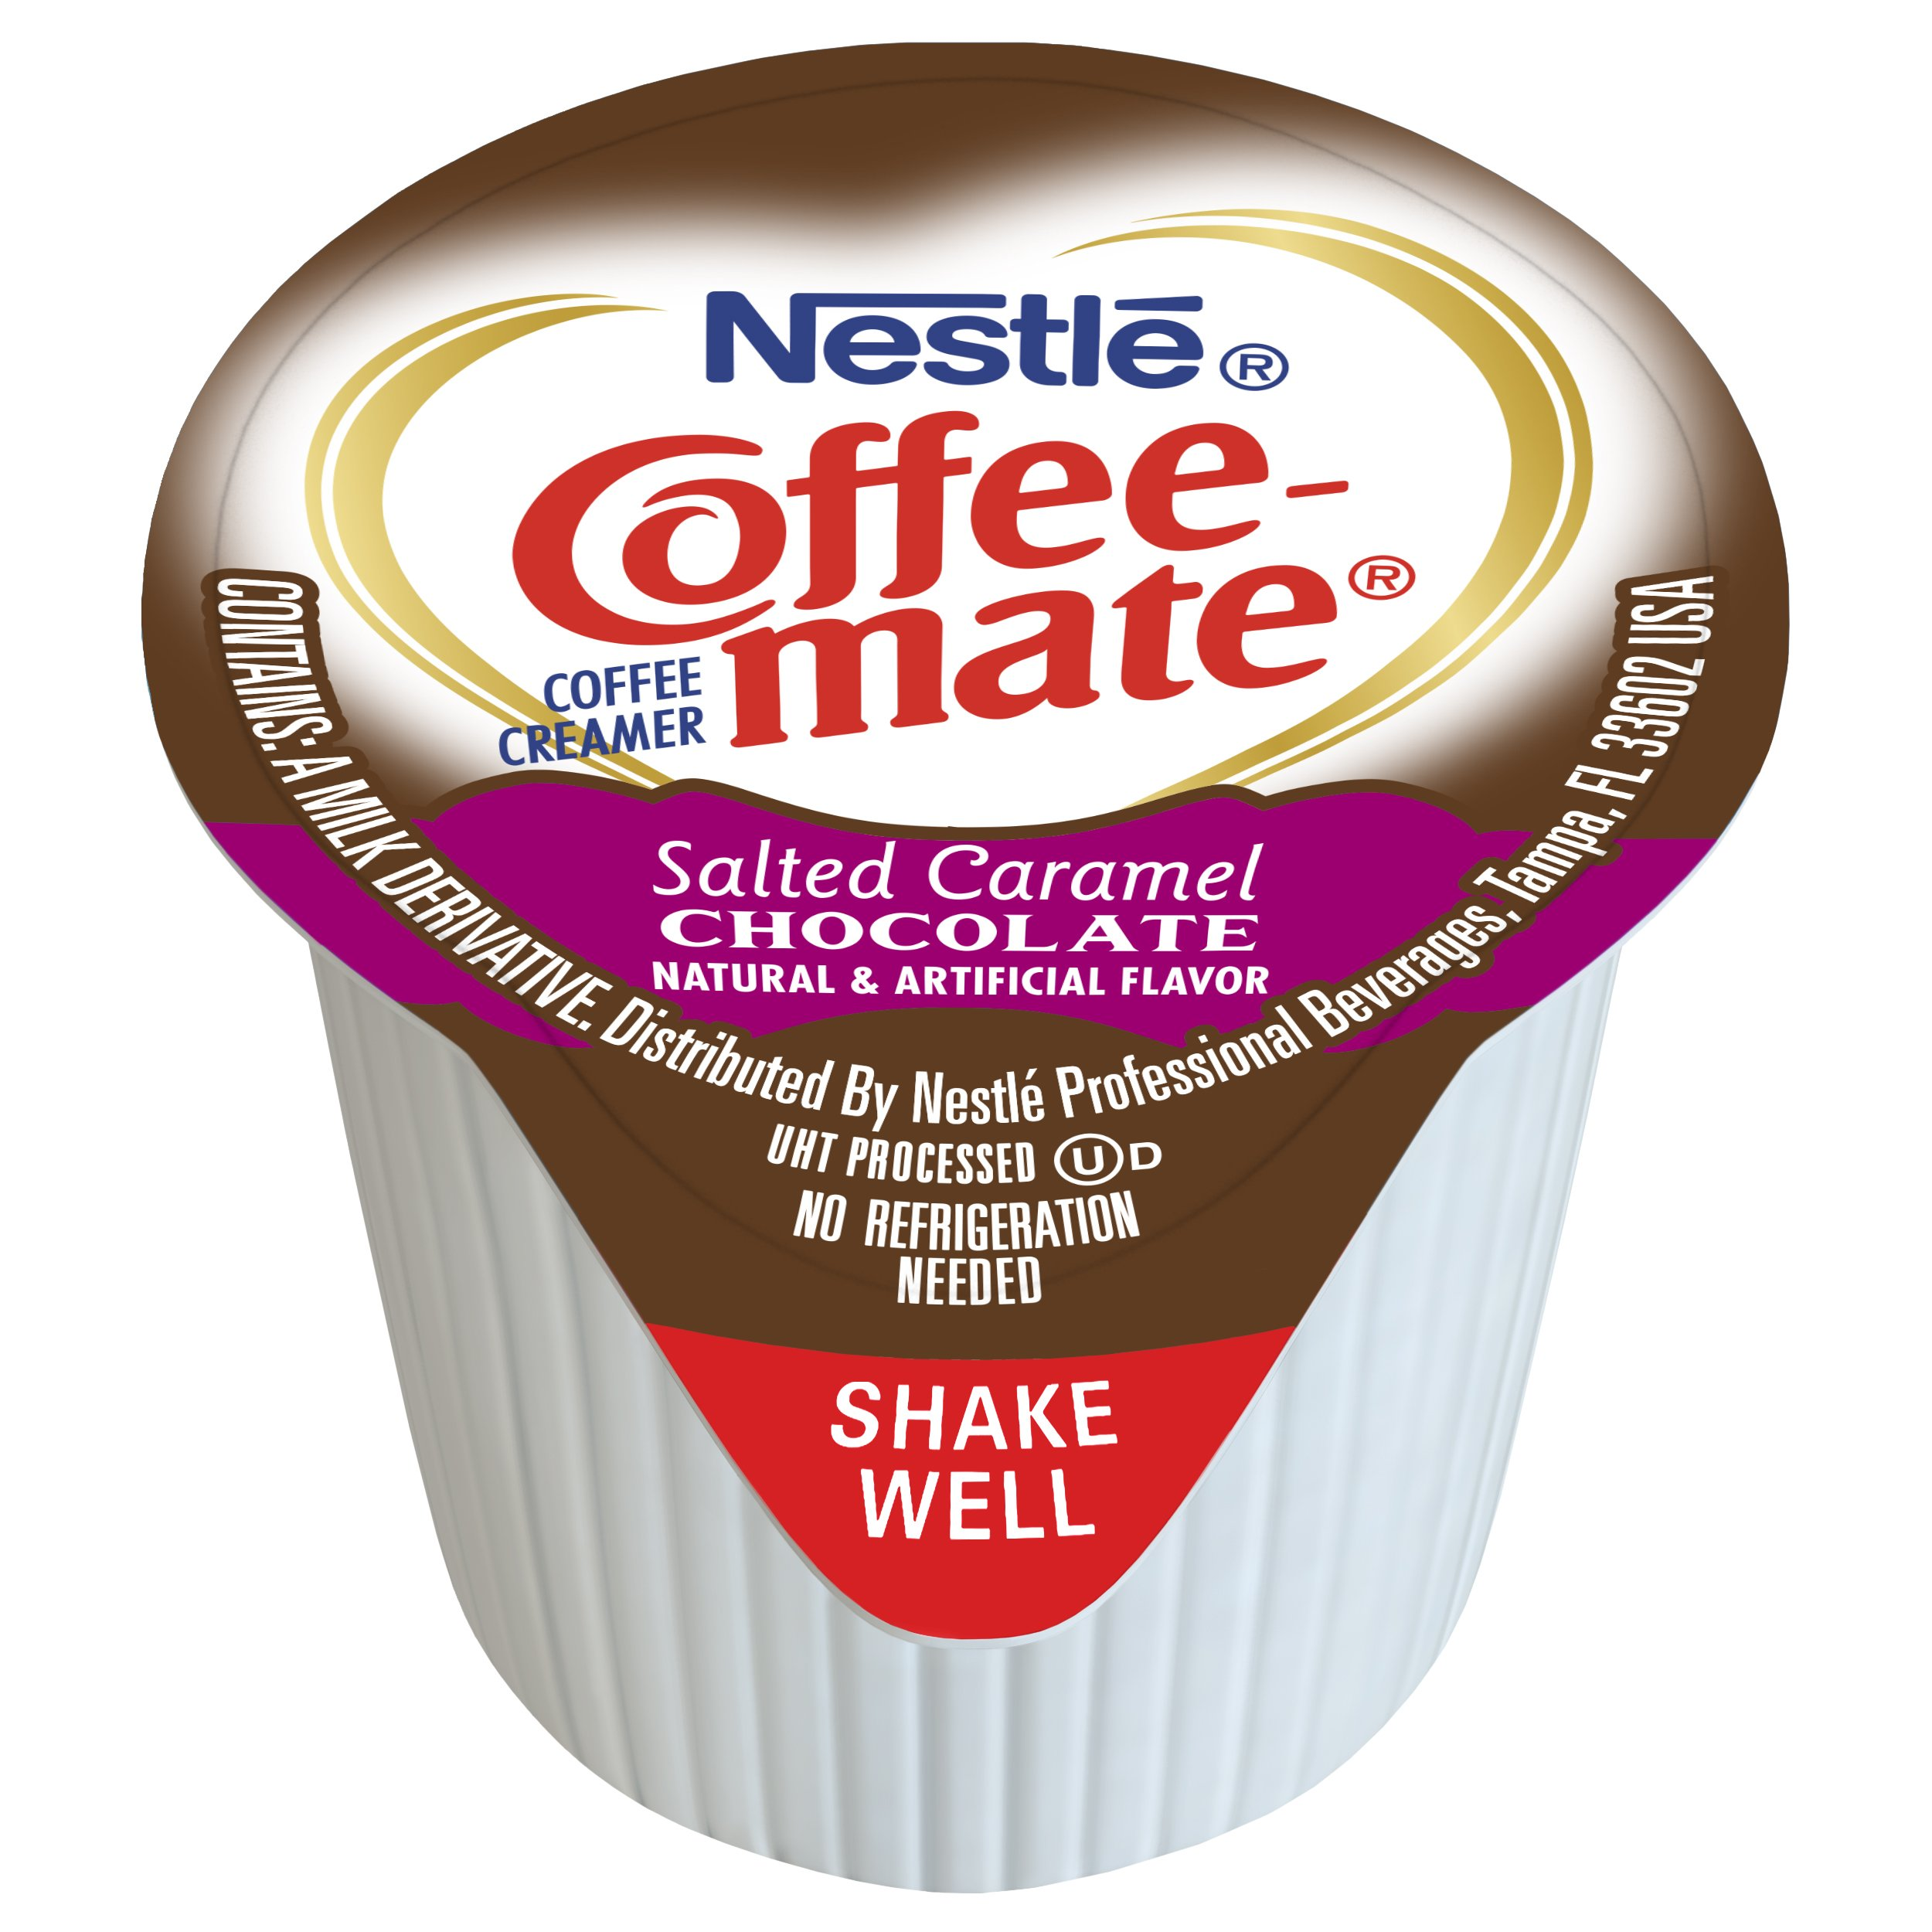 Nestle Coffee-mate Coffee Creamer, Salted Caramel Chocolate, liquid creamer singles, 180 Count (Pack of 1) by Nestle Coffee Mate (Image #2)